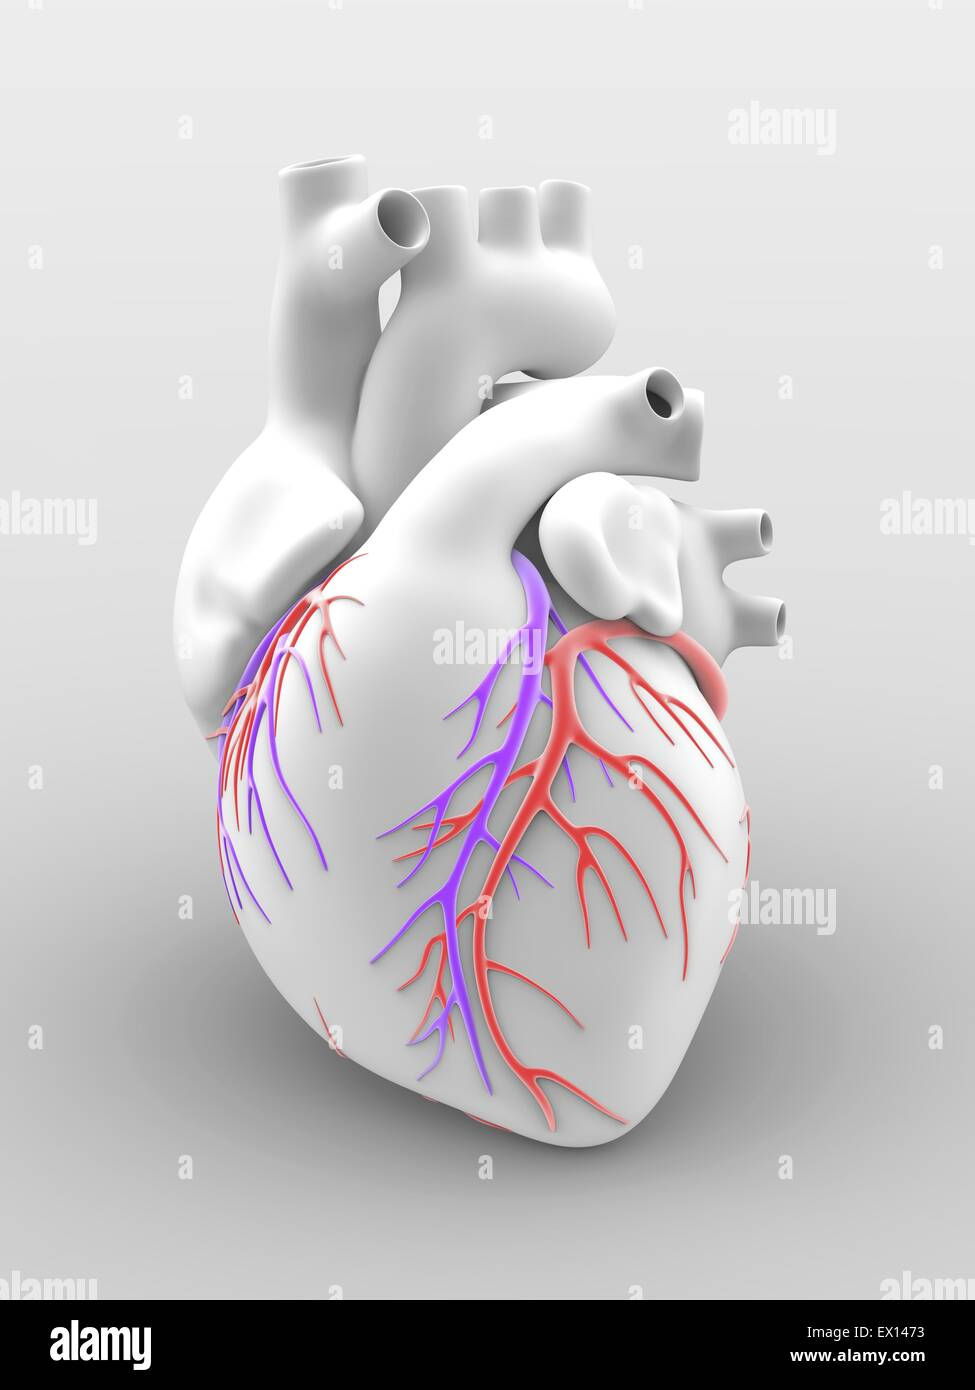 Heart And Coronary Arteries Artwork Of The External Anatomy Of A